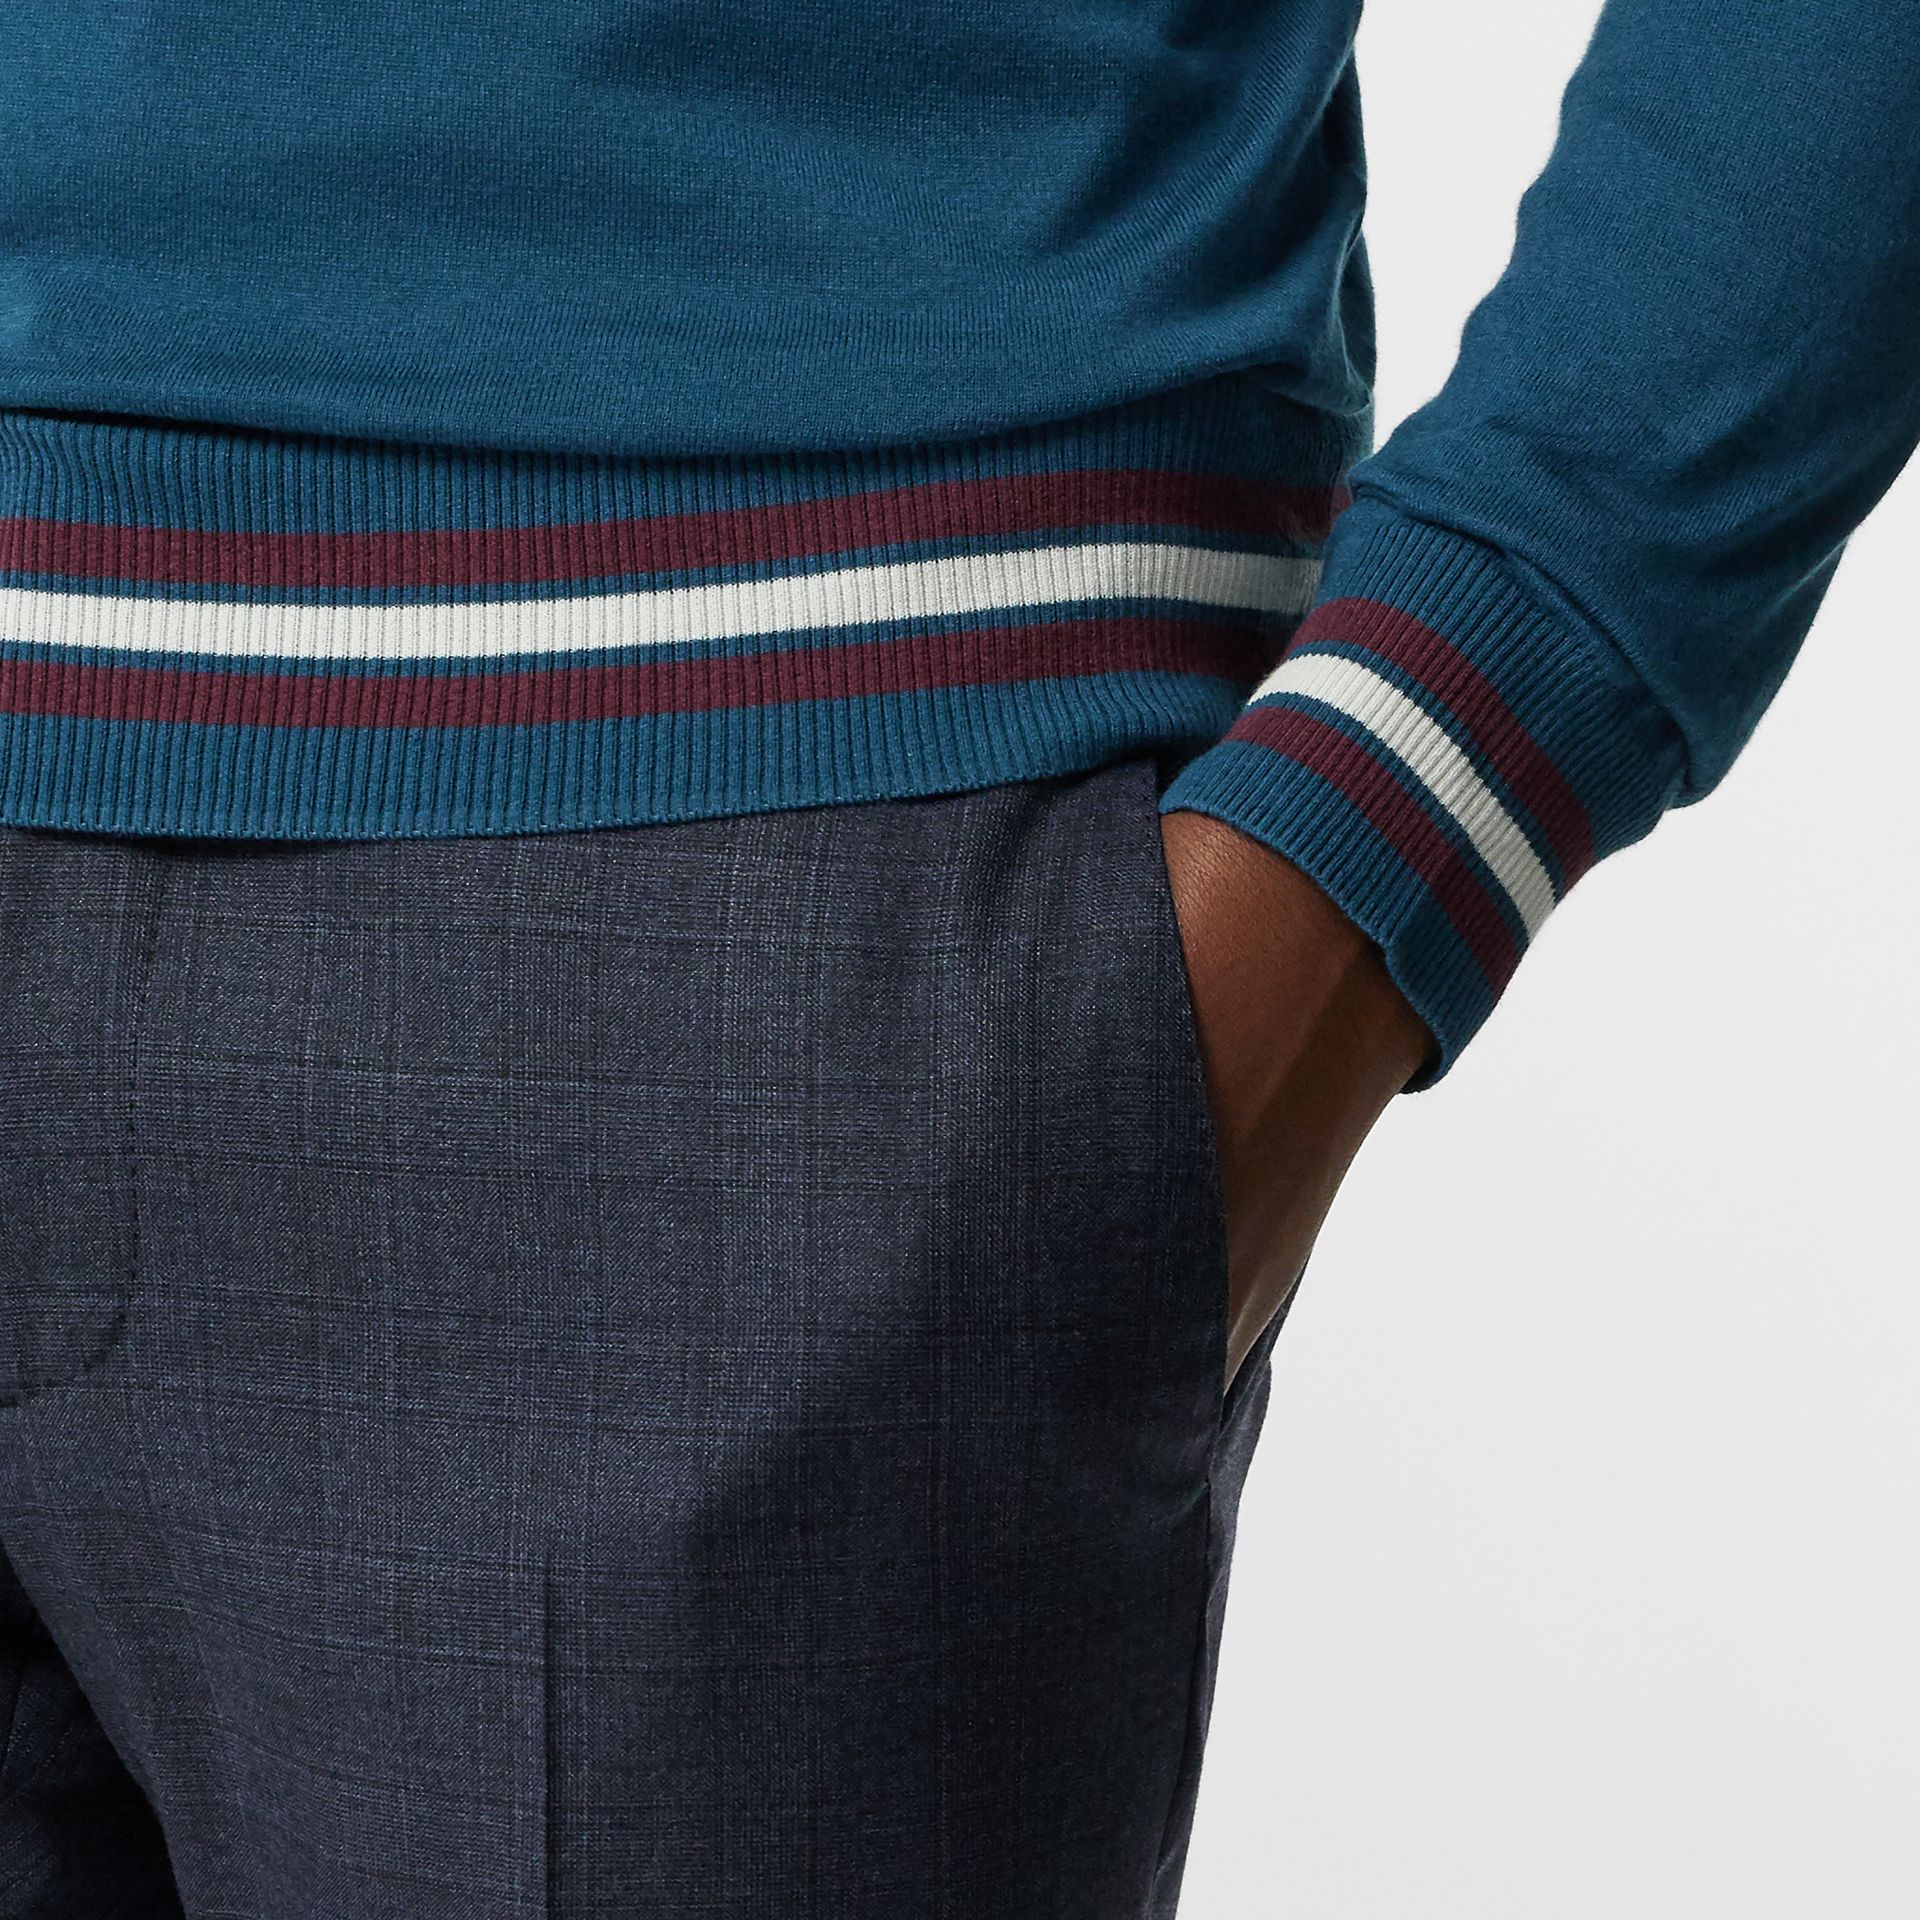 Embroidered Crest Cotton Silk Sweater in Dark Teal Blue - Men | Burberry United States - gallery image 4